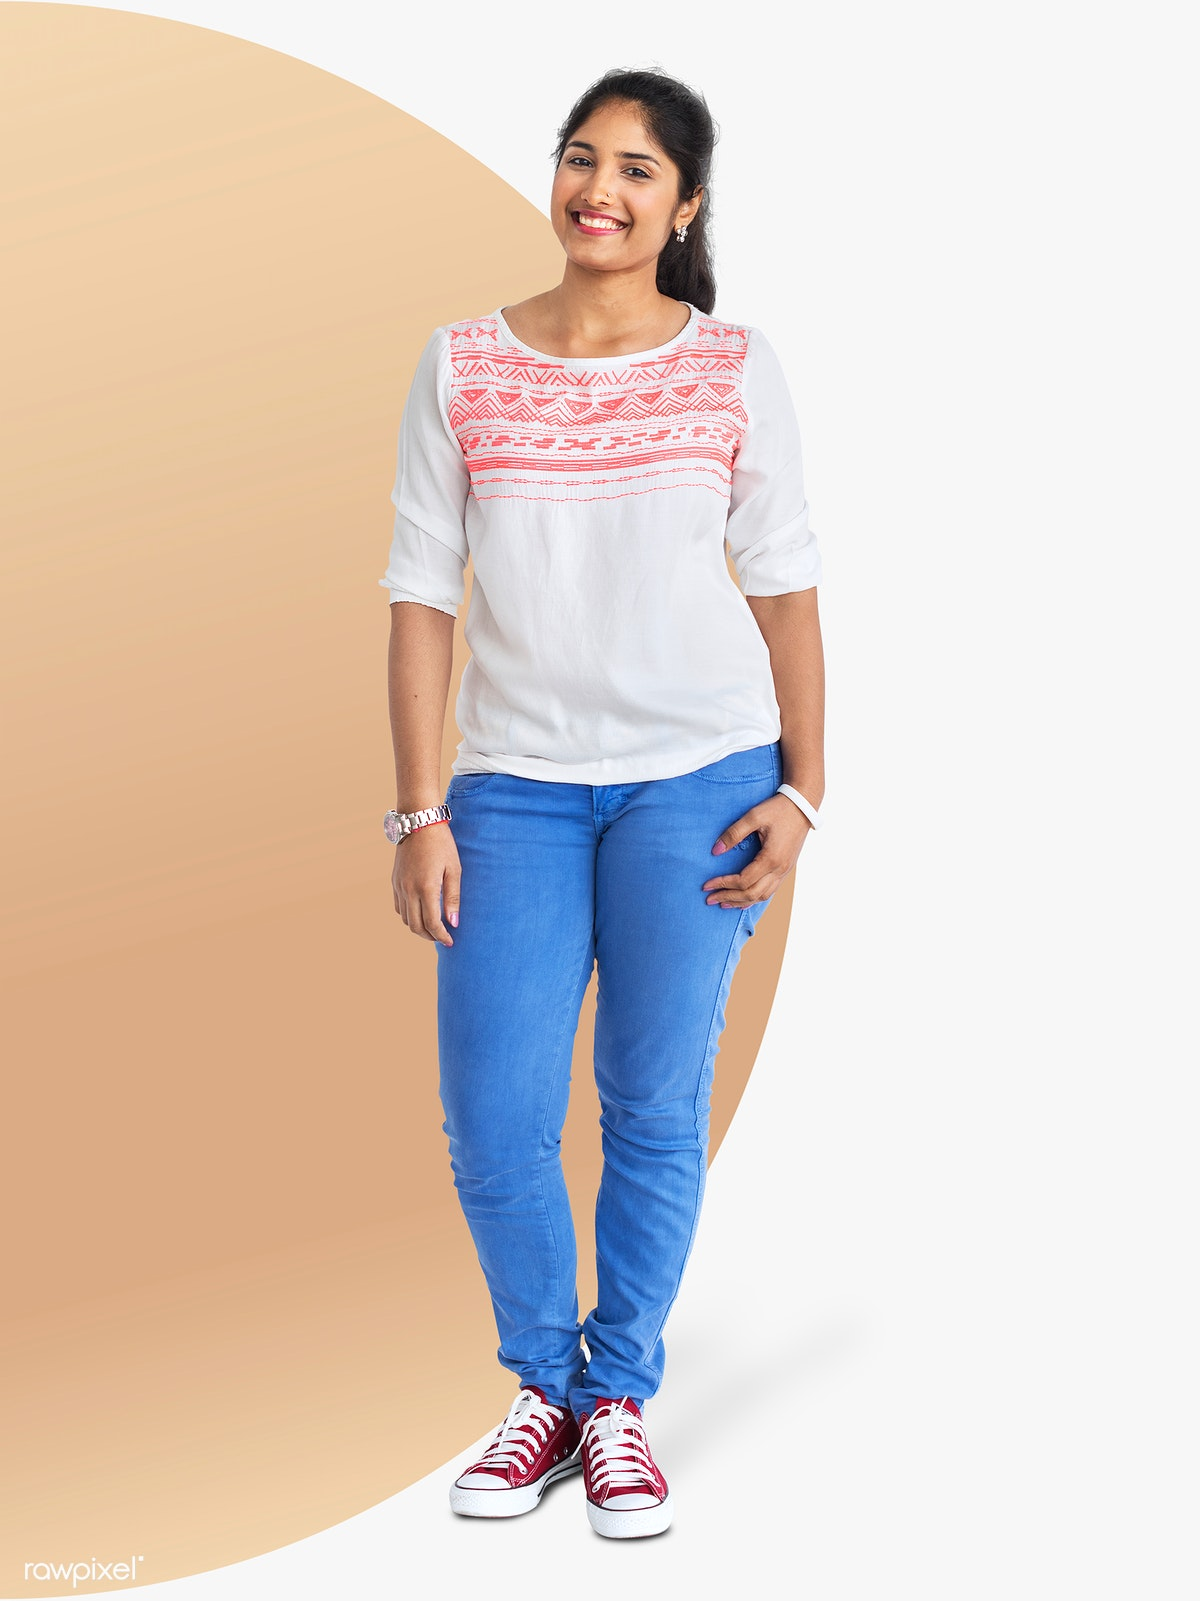 a8579e23 Cheerful Indian girl in jeans character isolated on a striped background